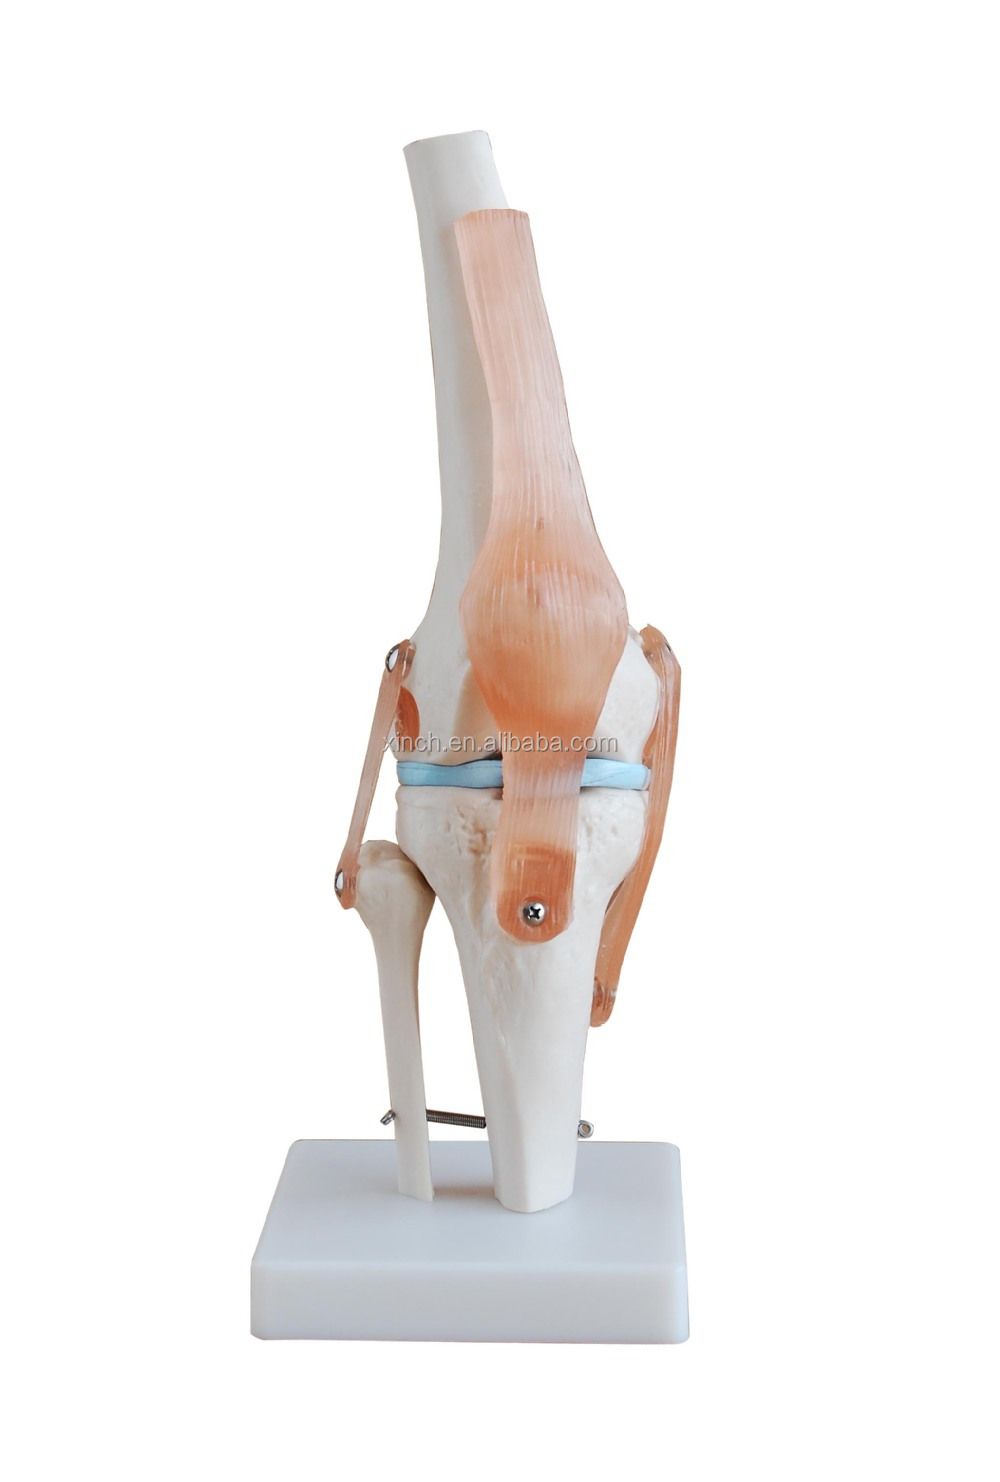 Life-Size Artificial Knee Joint Anatomical Model